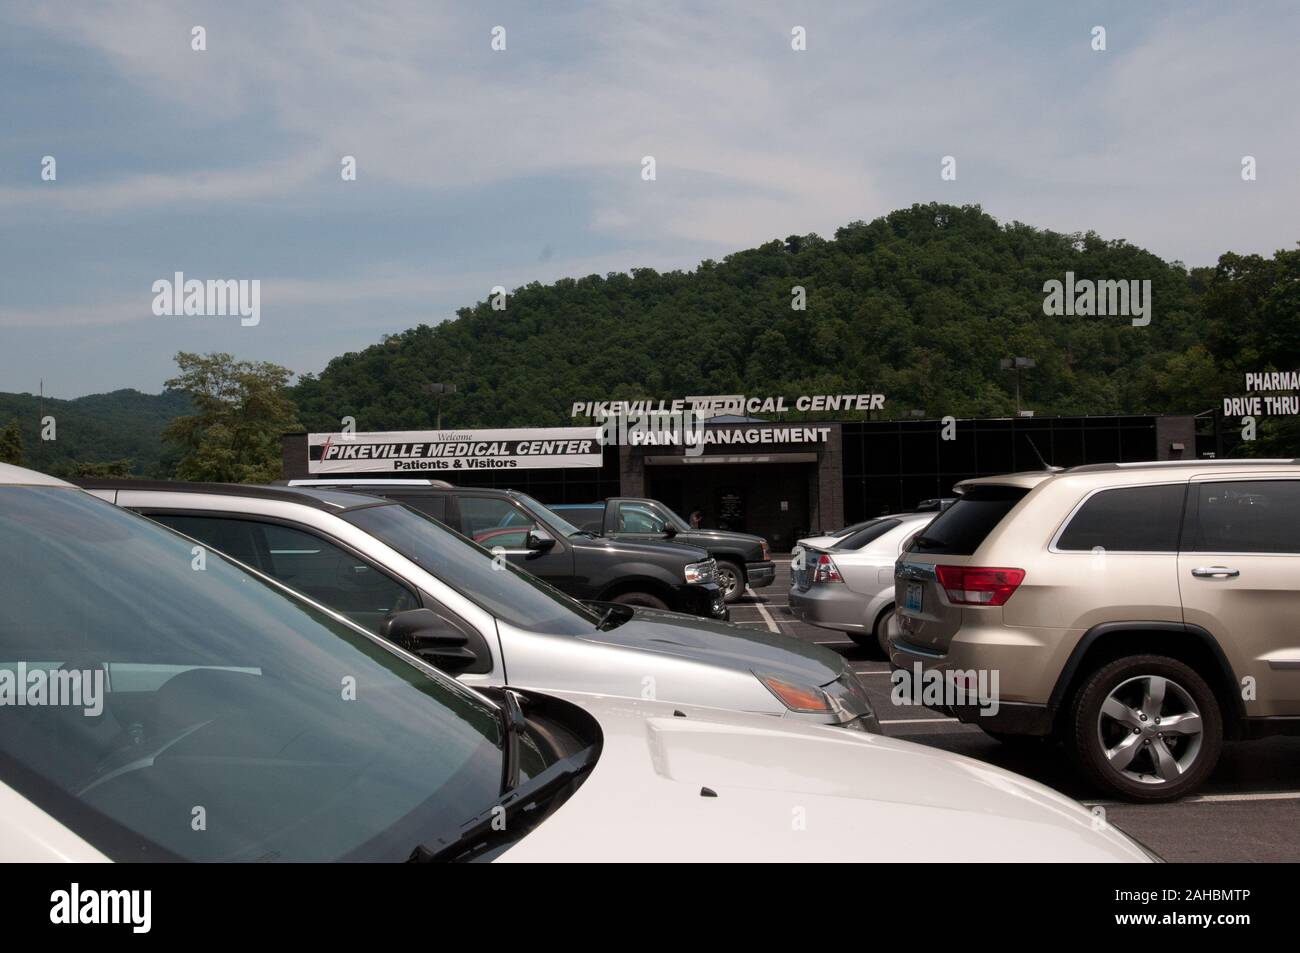 American Pickers Pikeville Nc pikeville stock photos & pikeville stock images - alamy